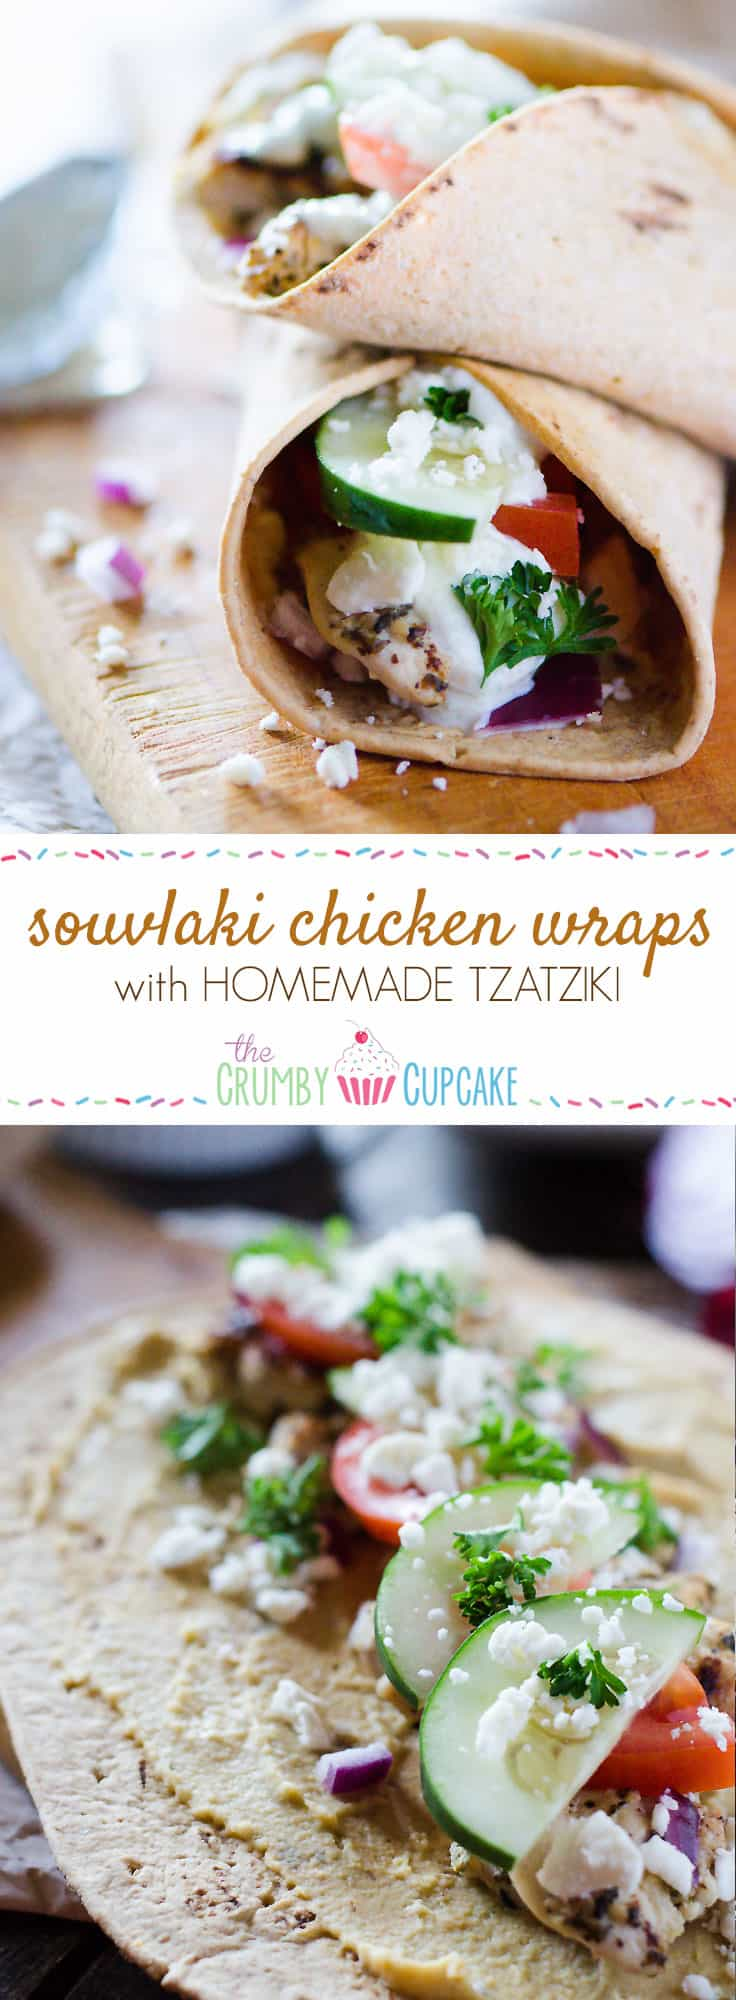 Souvlaki Chicken Wraps with Homemade Tzatziki | Flatbread stuffed with hummus, souvlaki chicken, veggies, feta cheese, and homemade tzatziki, these easy Greek-style wraps are perfect for lunch on the go or a fun #SundaySupper!